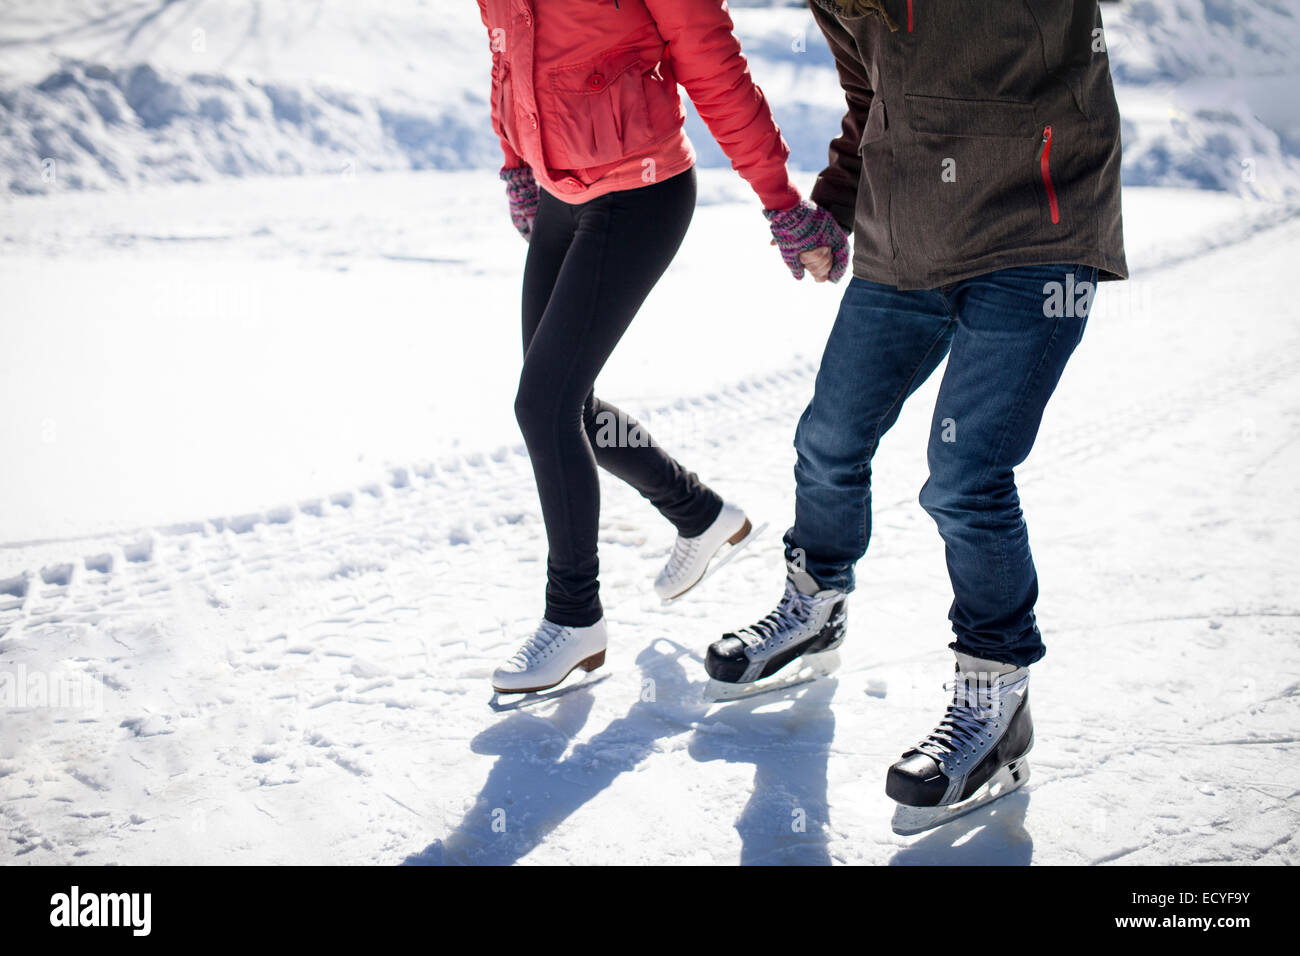 Caucasian couple ice skating on snowy frozen lake - Stock Image